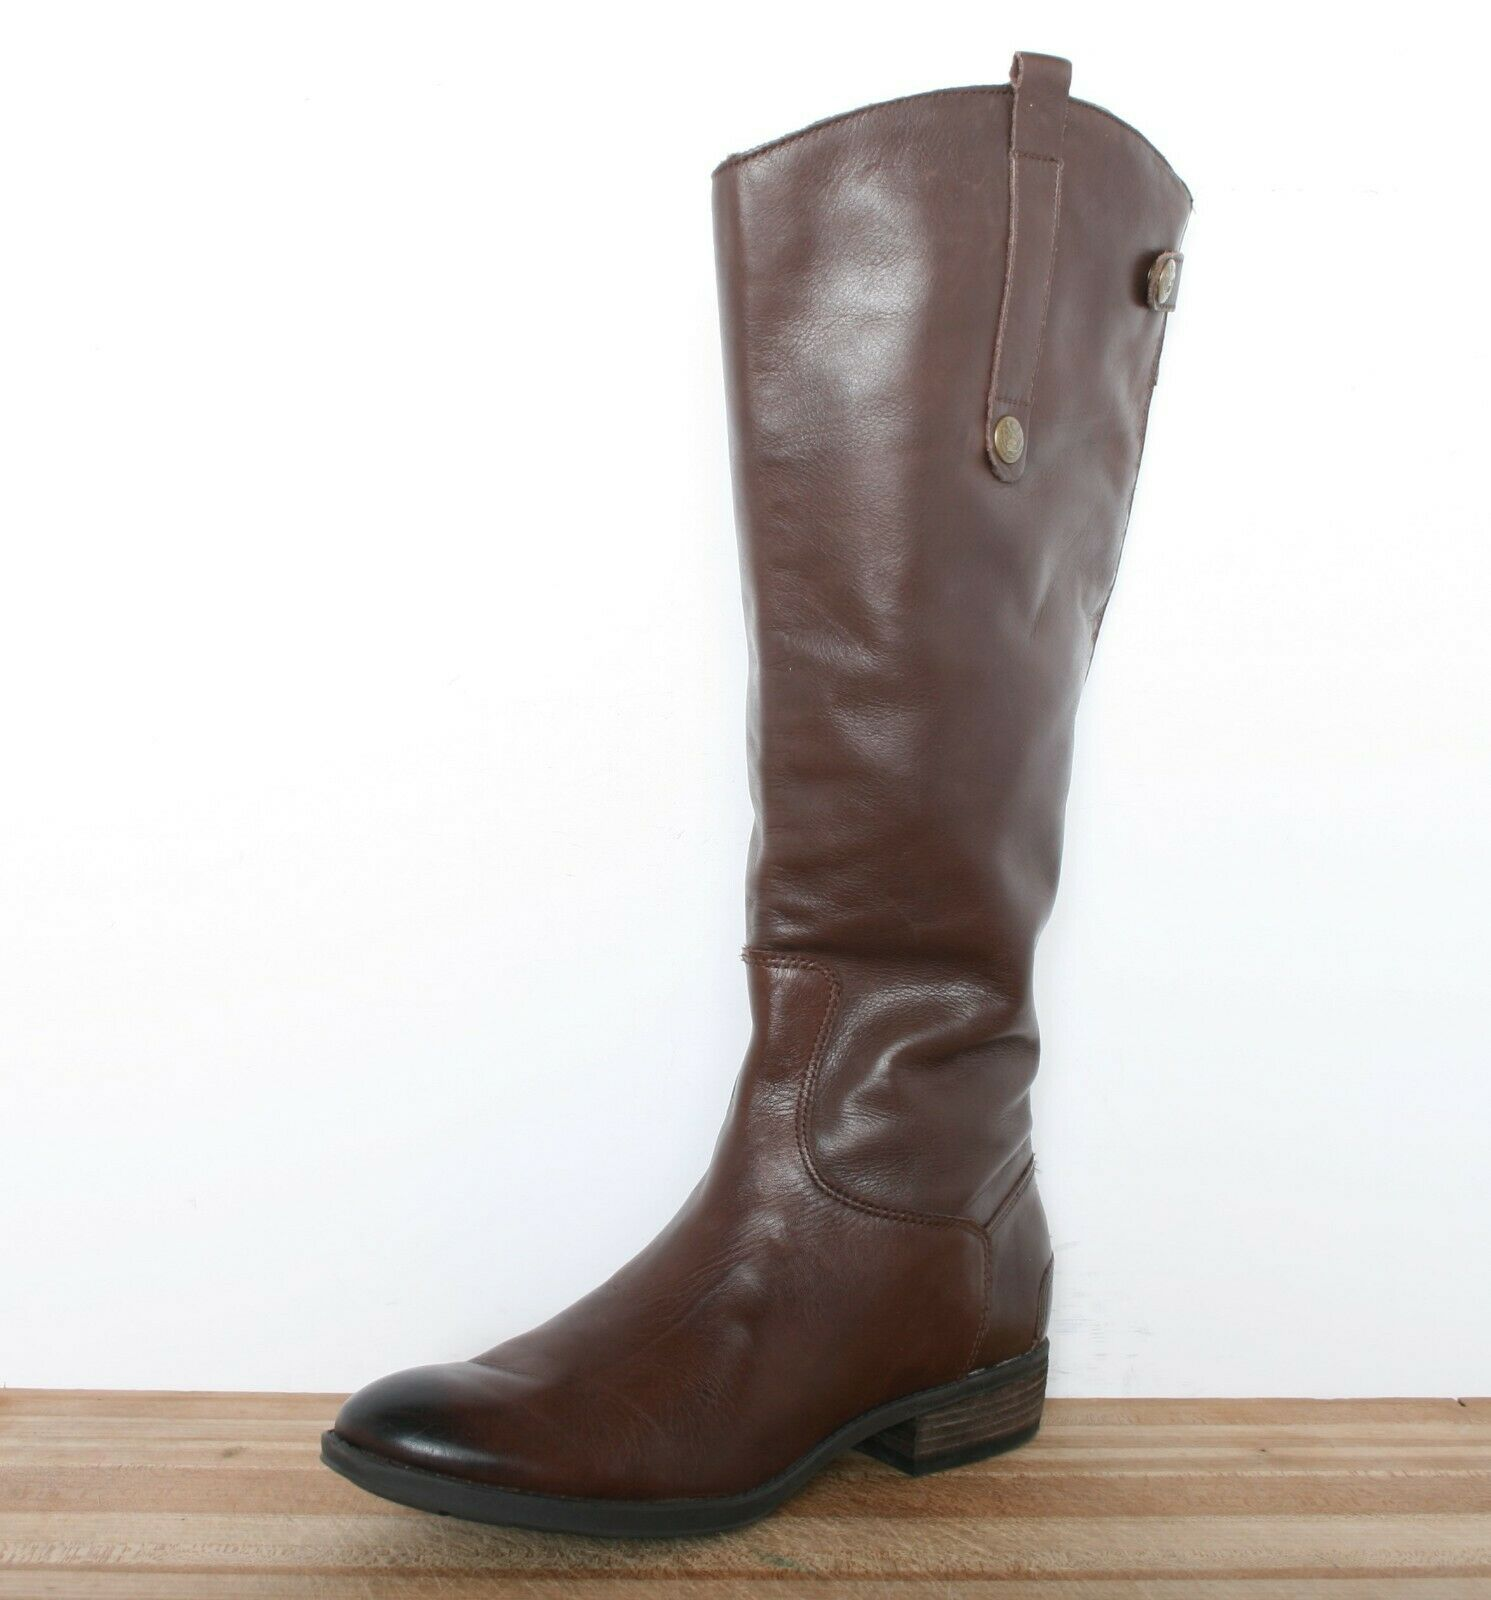 SAM EDELMAN 'Penny' Brown Leather Leather Leather 15  Tall Riding Boots Women's Sz. 8M 51180e